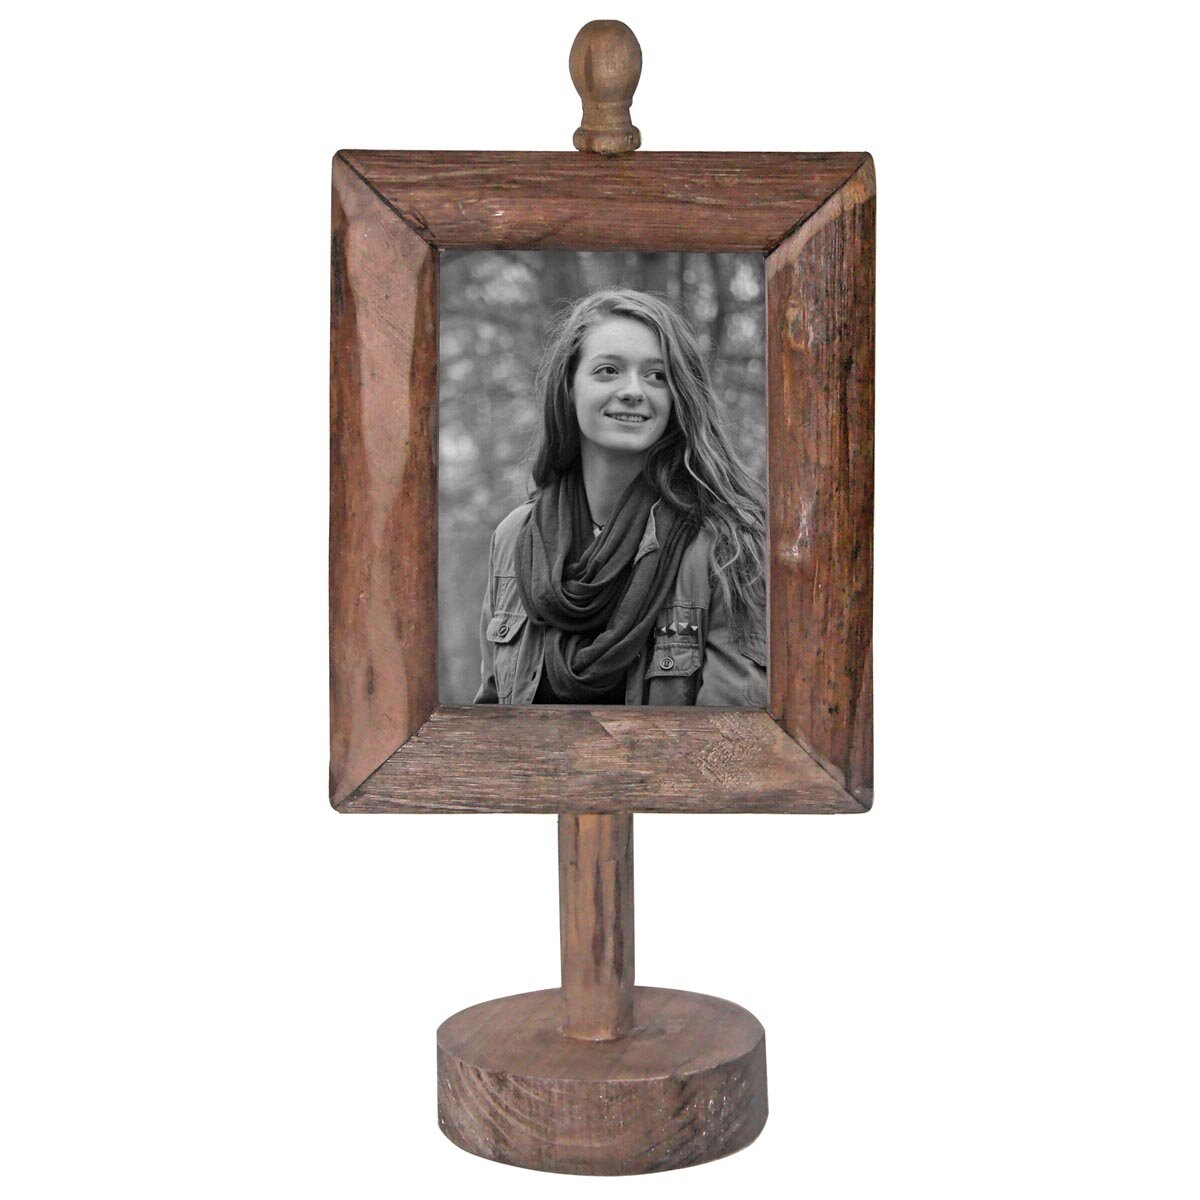 Home And Garden Picture Frames : Foreside home garden wood pedestal picture frame